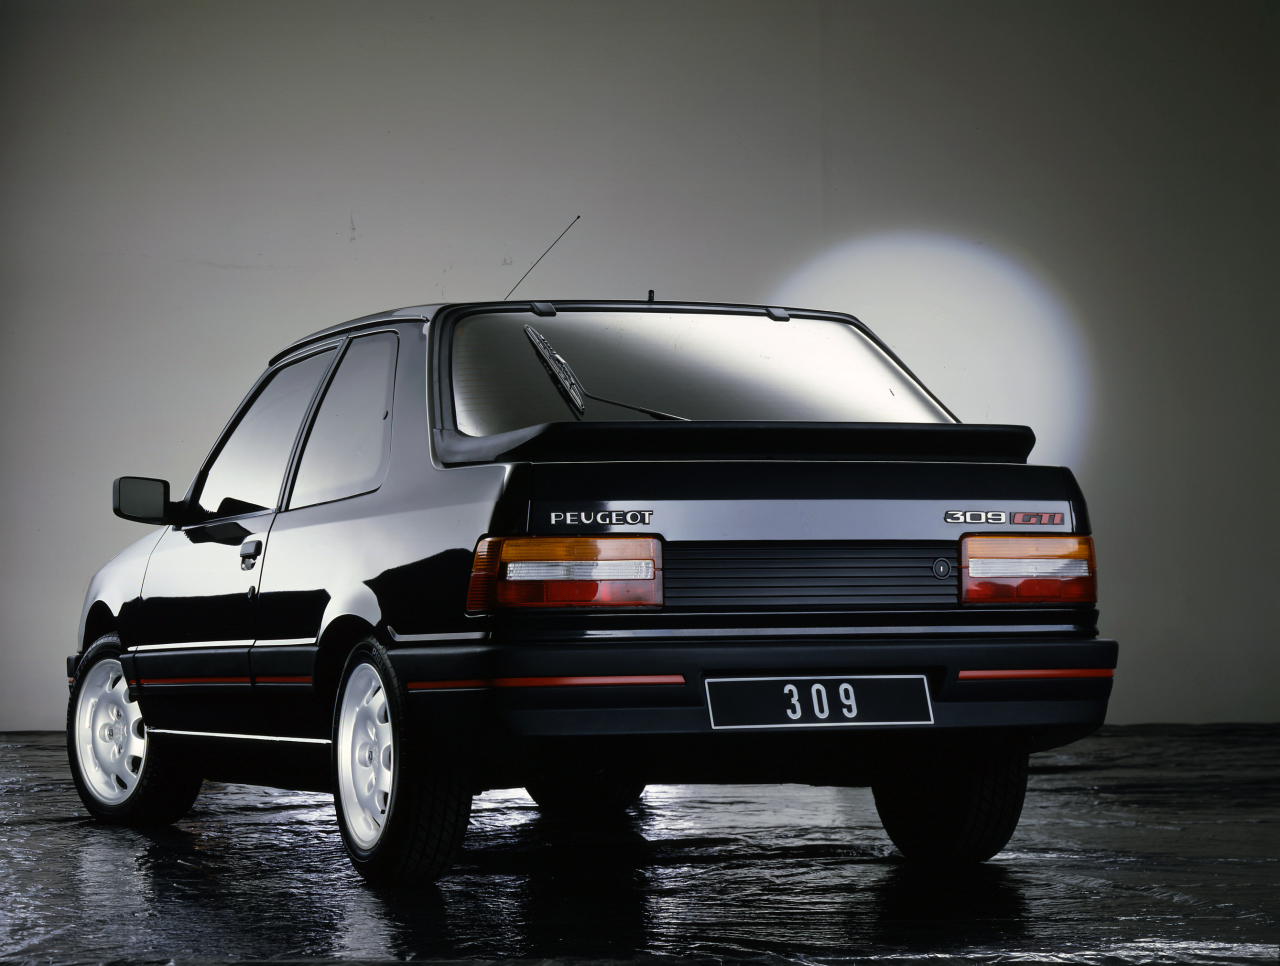 peugeot 309 gti mieux que la 205 gti voitures youngtimers. Black Bedroom Furniture Sets. Home Design Ideas